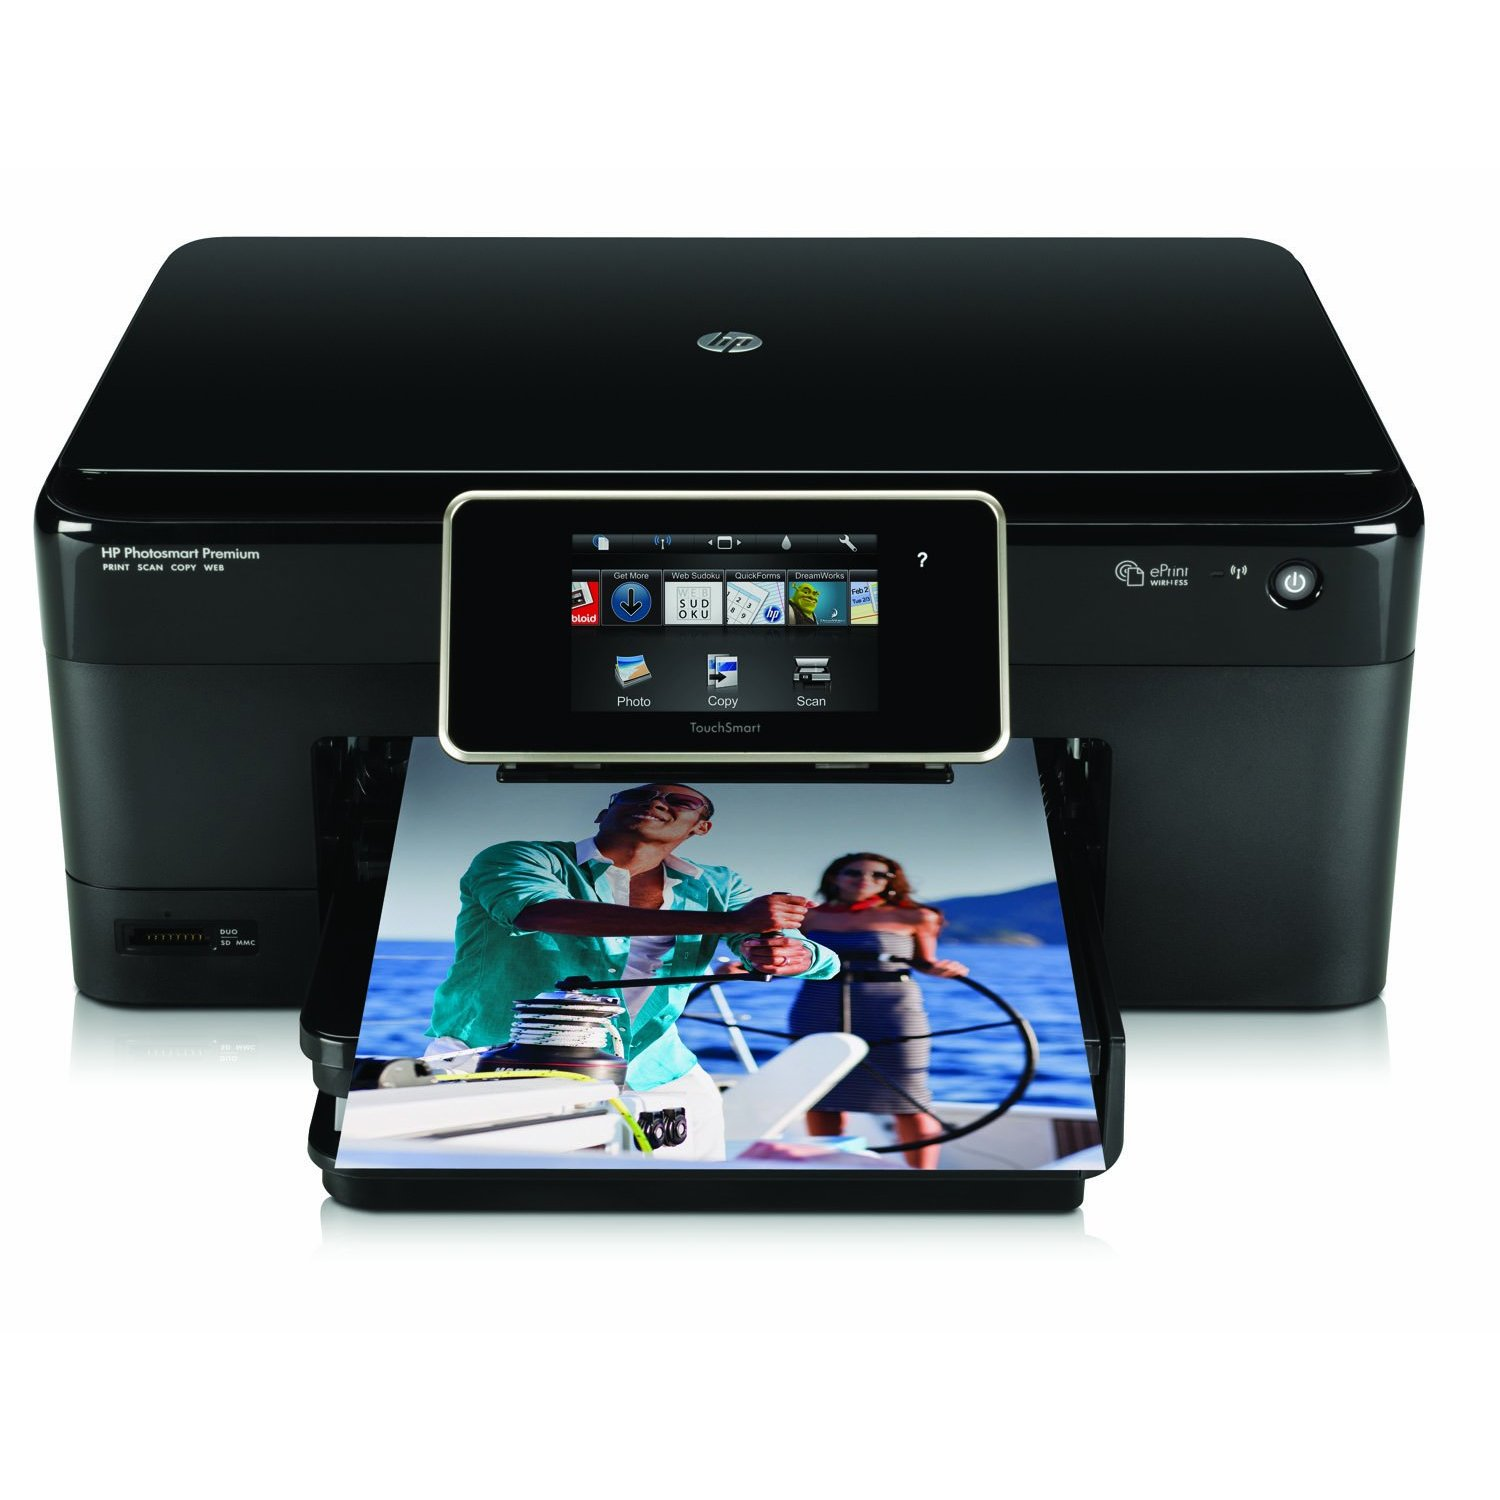 Hp photosmart d7560 printer best buy 13 of the scariest events to happen on Friday the 13th